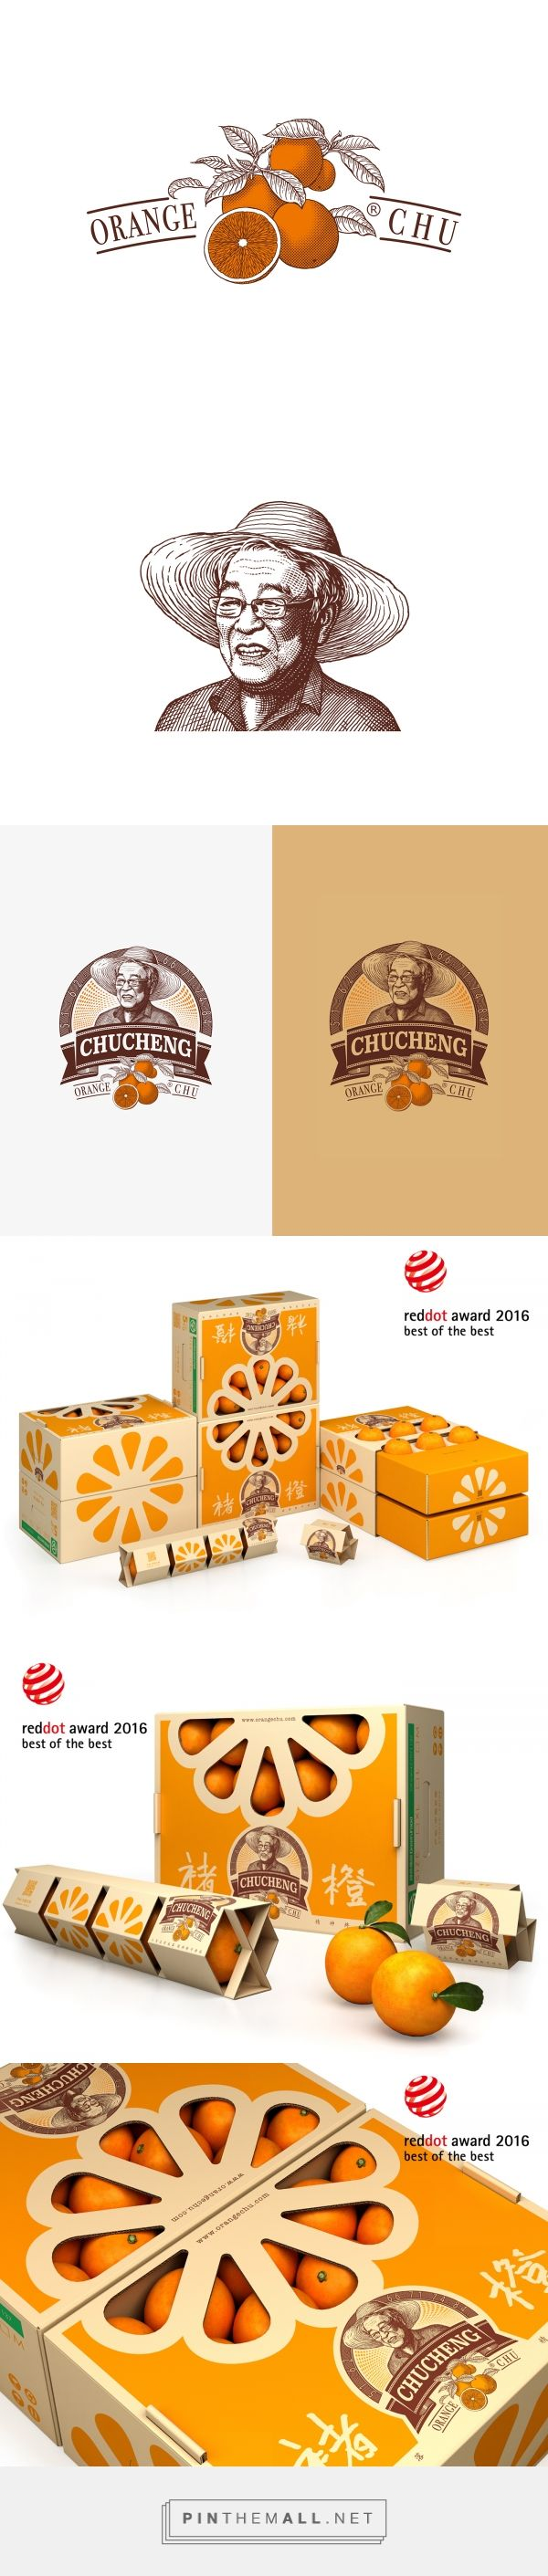 Chu's Orange Packaging and Logo Design by Tiger Pan | Fivestar Branding Agency – Design and Branding Agency & Curated Inspiration Gallery